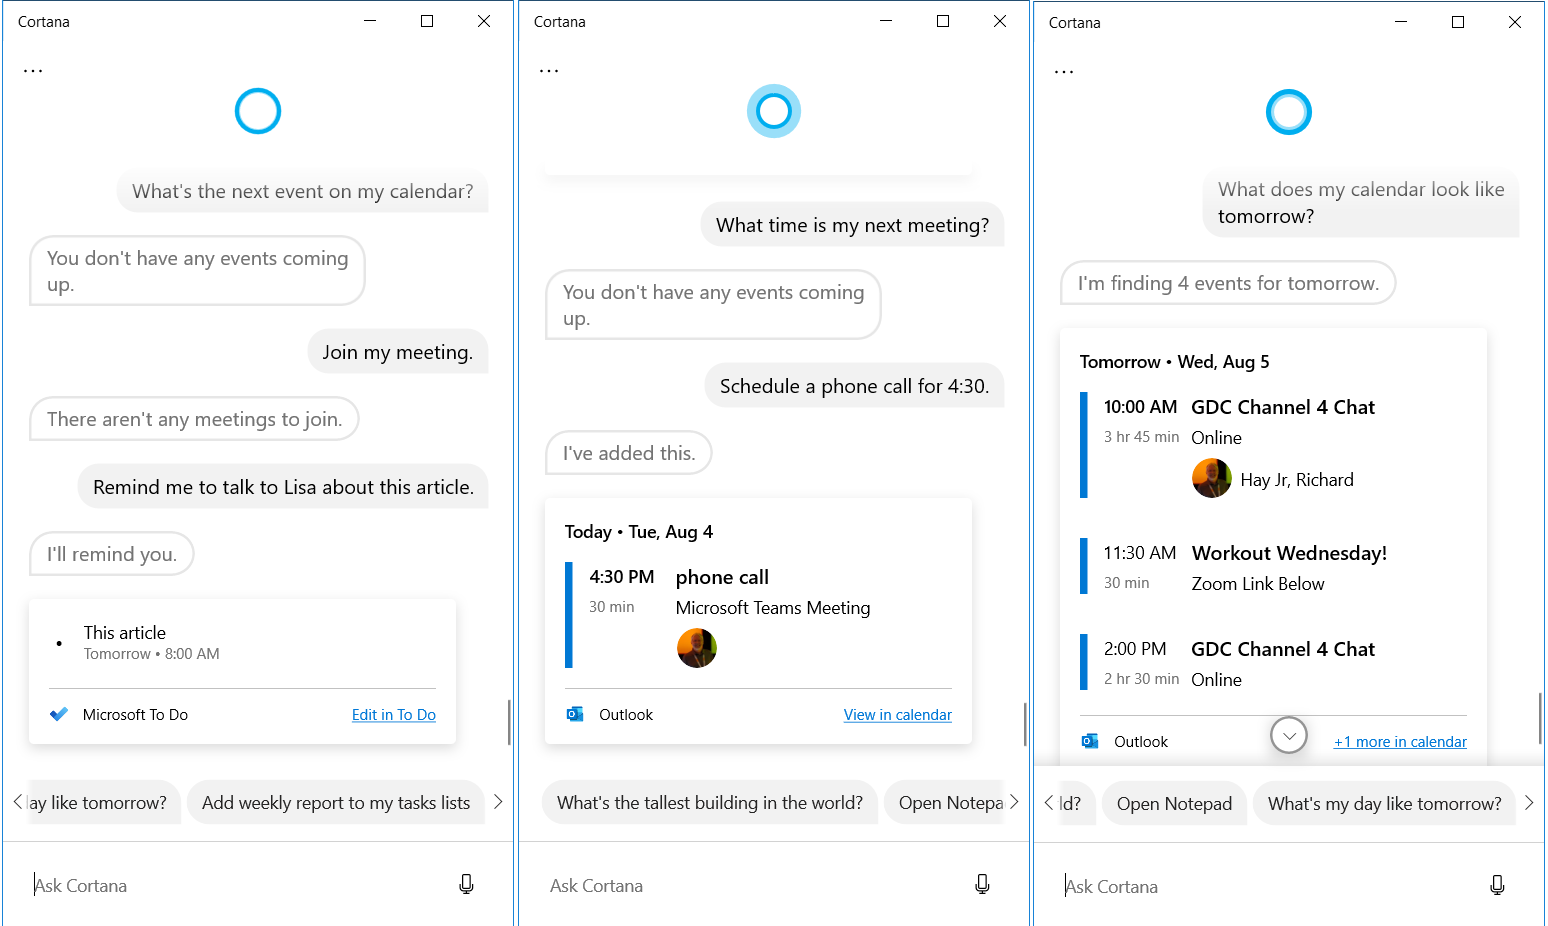 Cortana App for Windows 10 examples